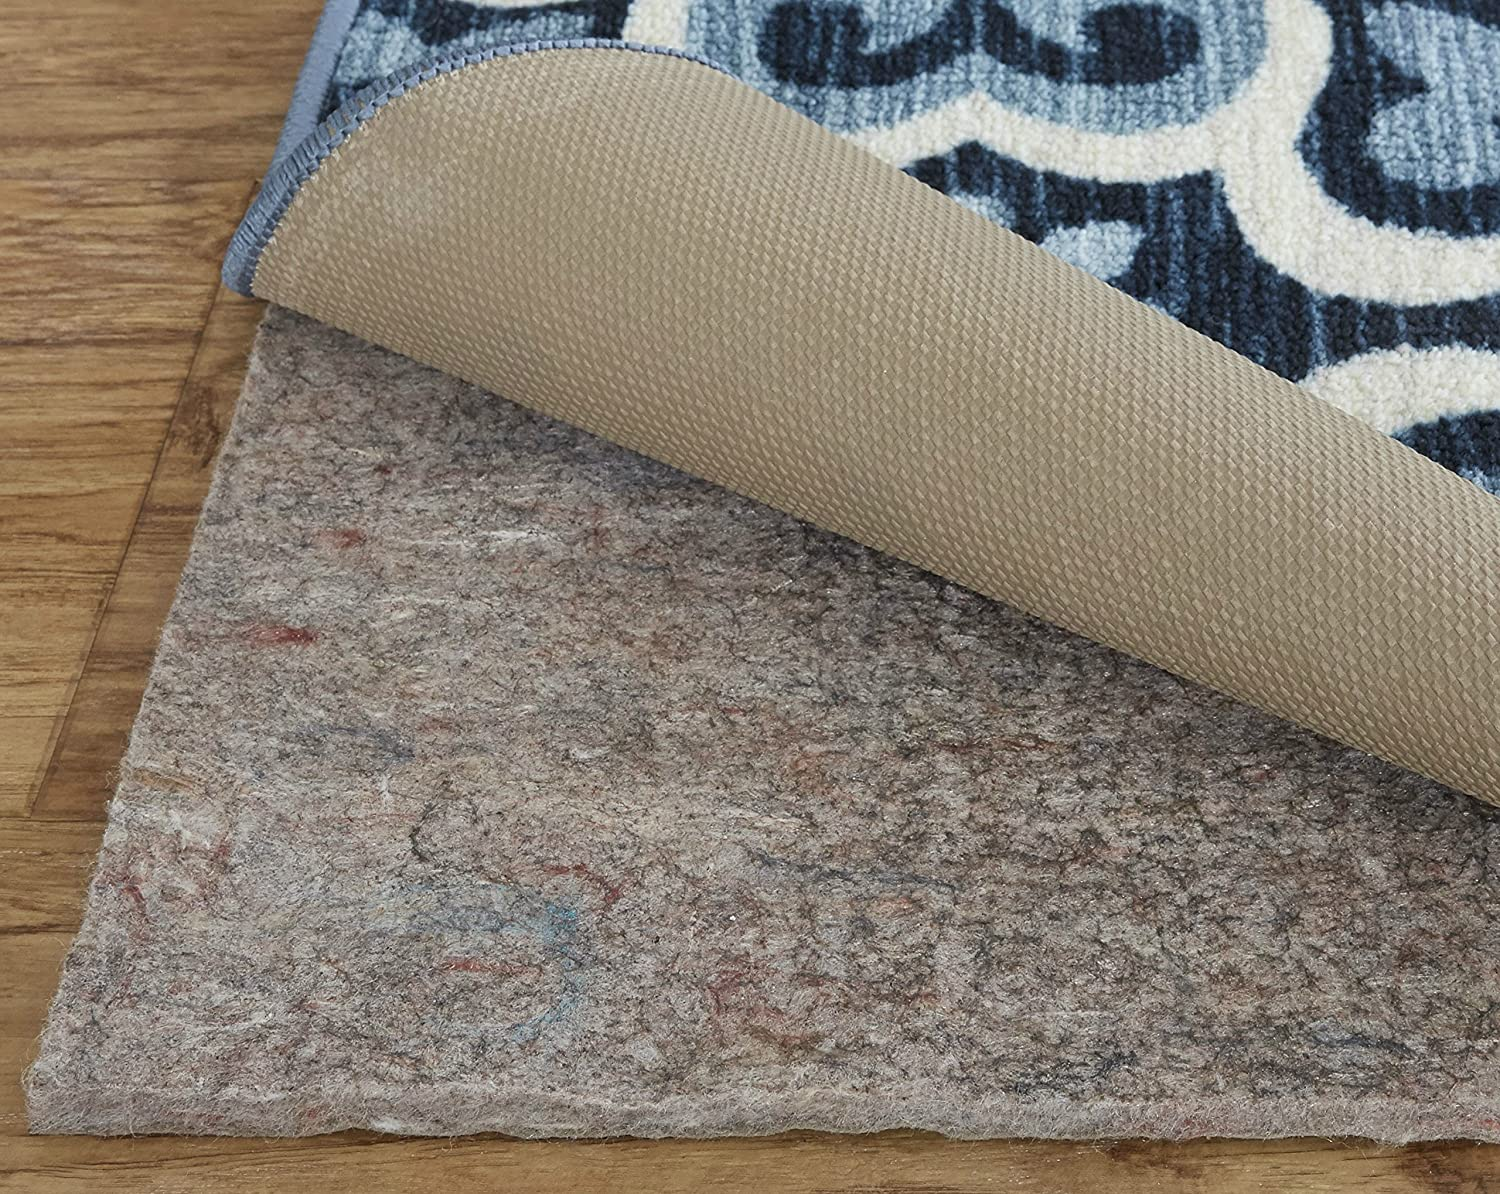 1//4 Inch Thick 9x13 Mohawk Home Dual Surface Felt Non Slip Rug Pad Safe for All Floors